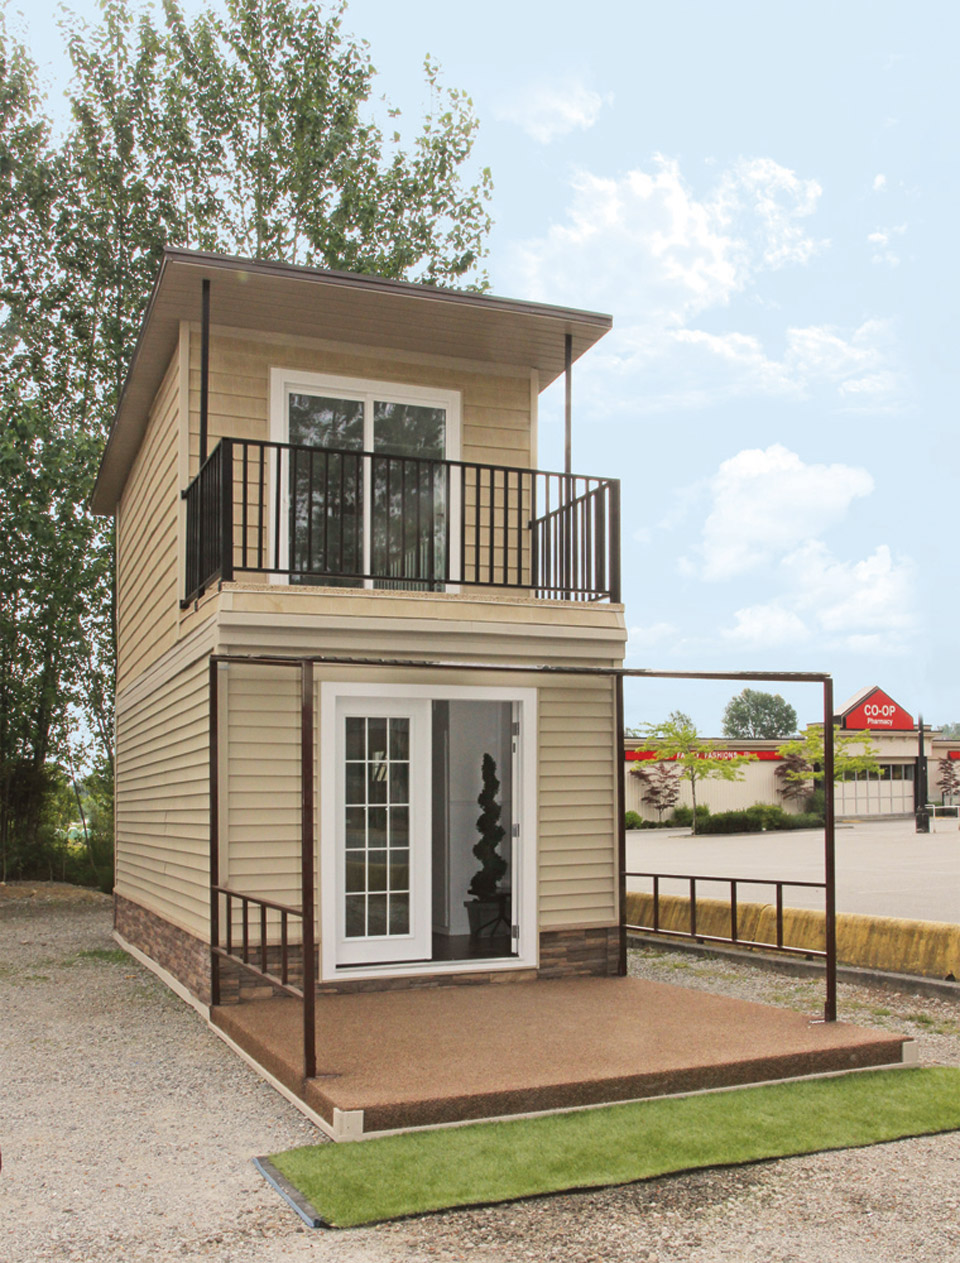 The eagle 1 a 350 sq ft 2 story steel framed micro home for How to frame a two story house